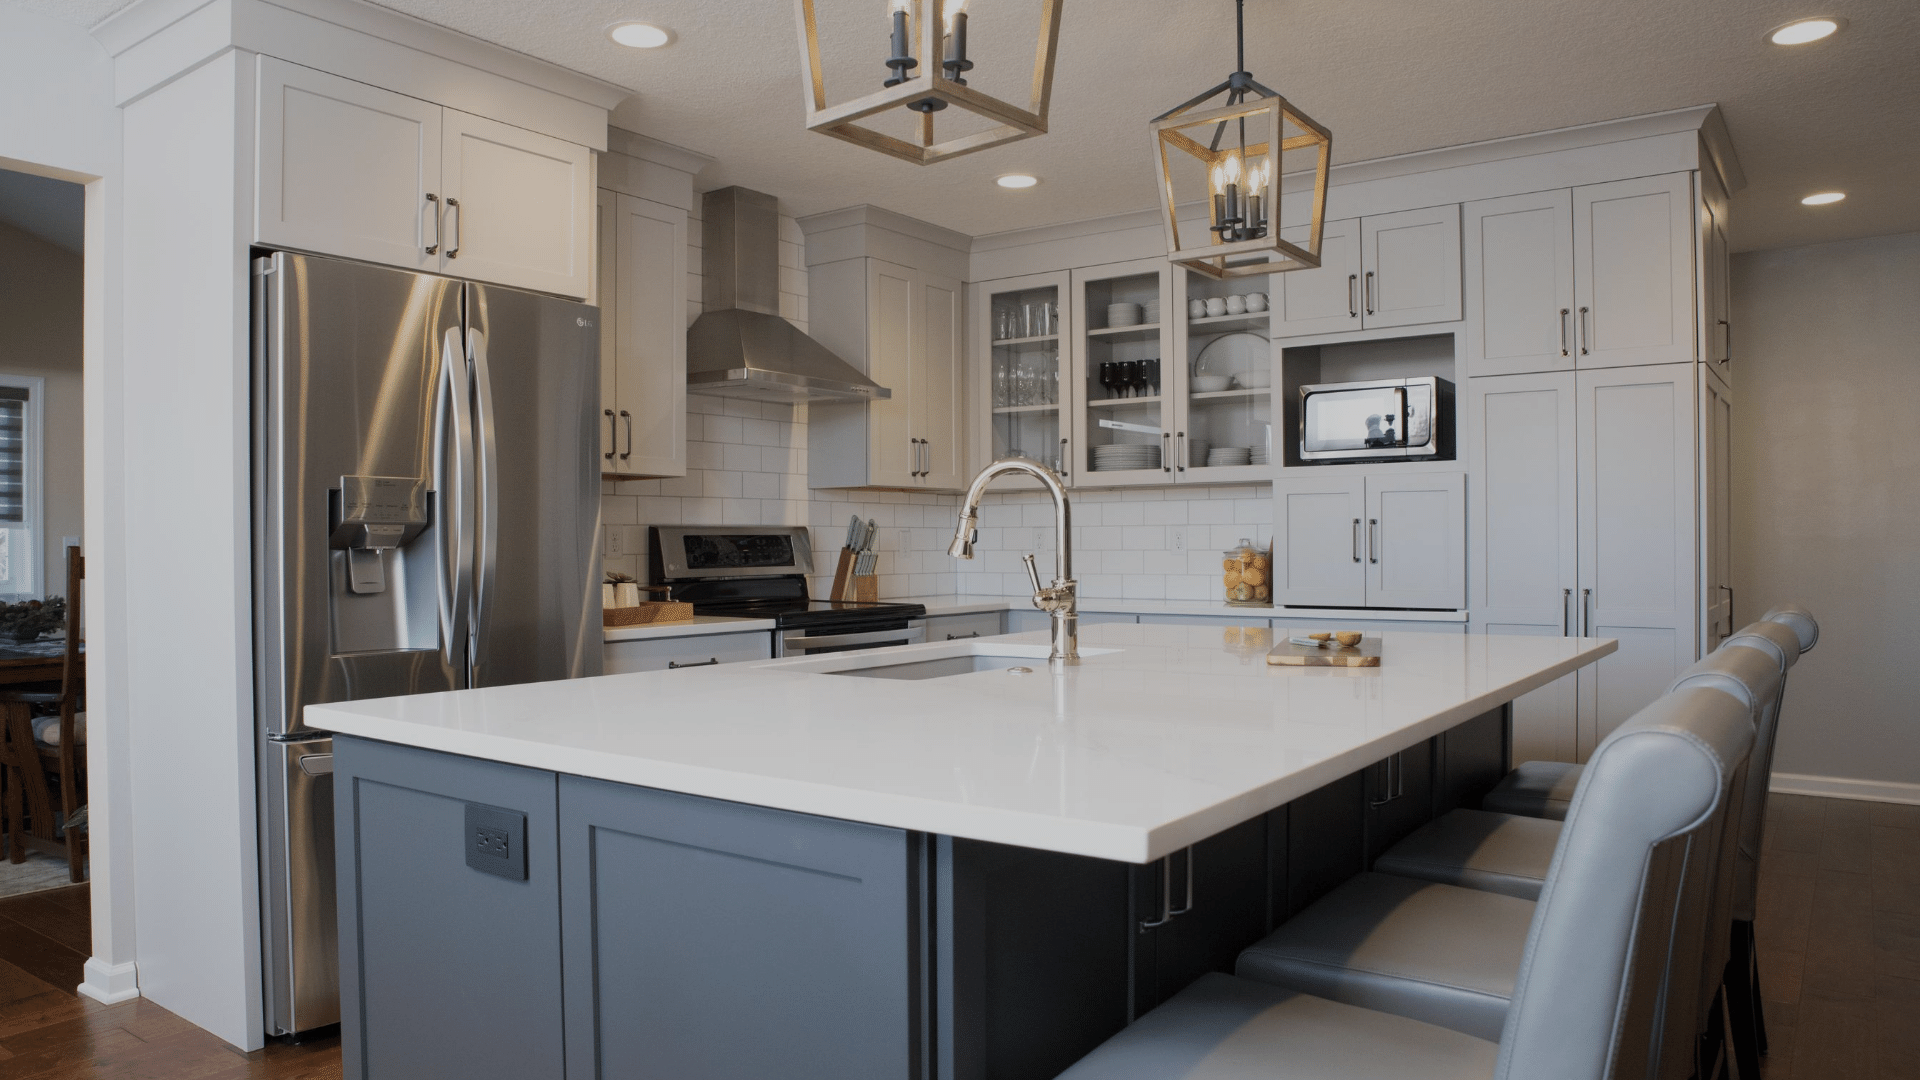 Kitchen Remodeling Services in Des Moines Iowa